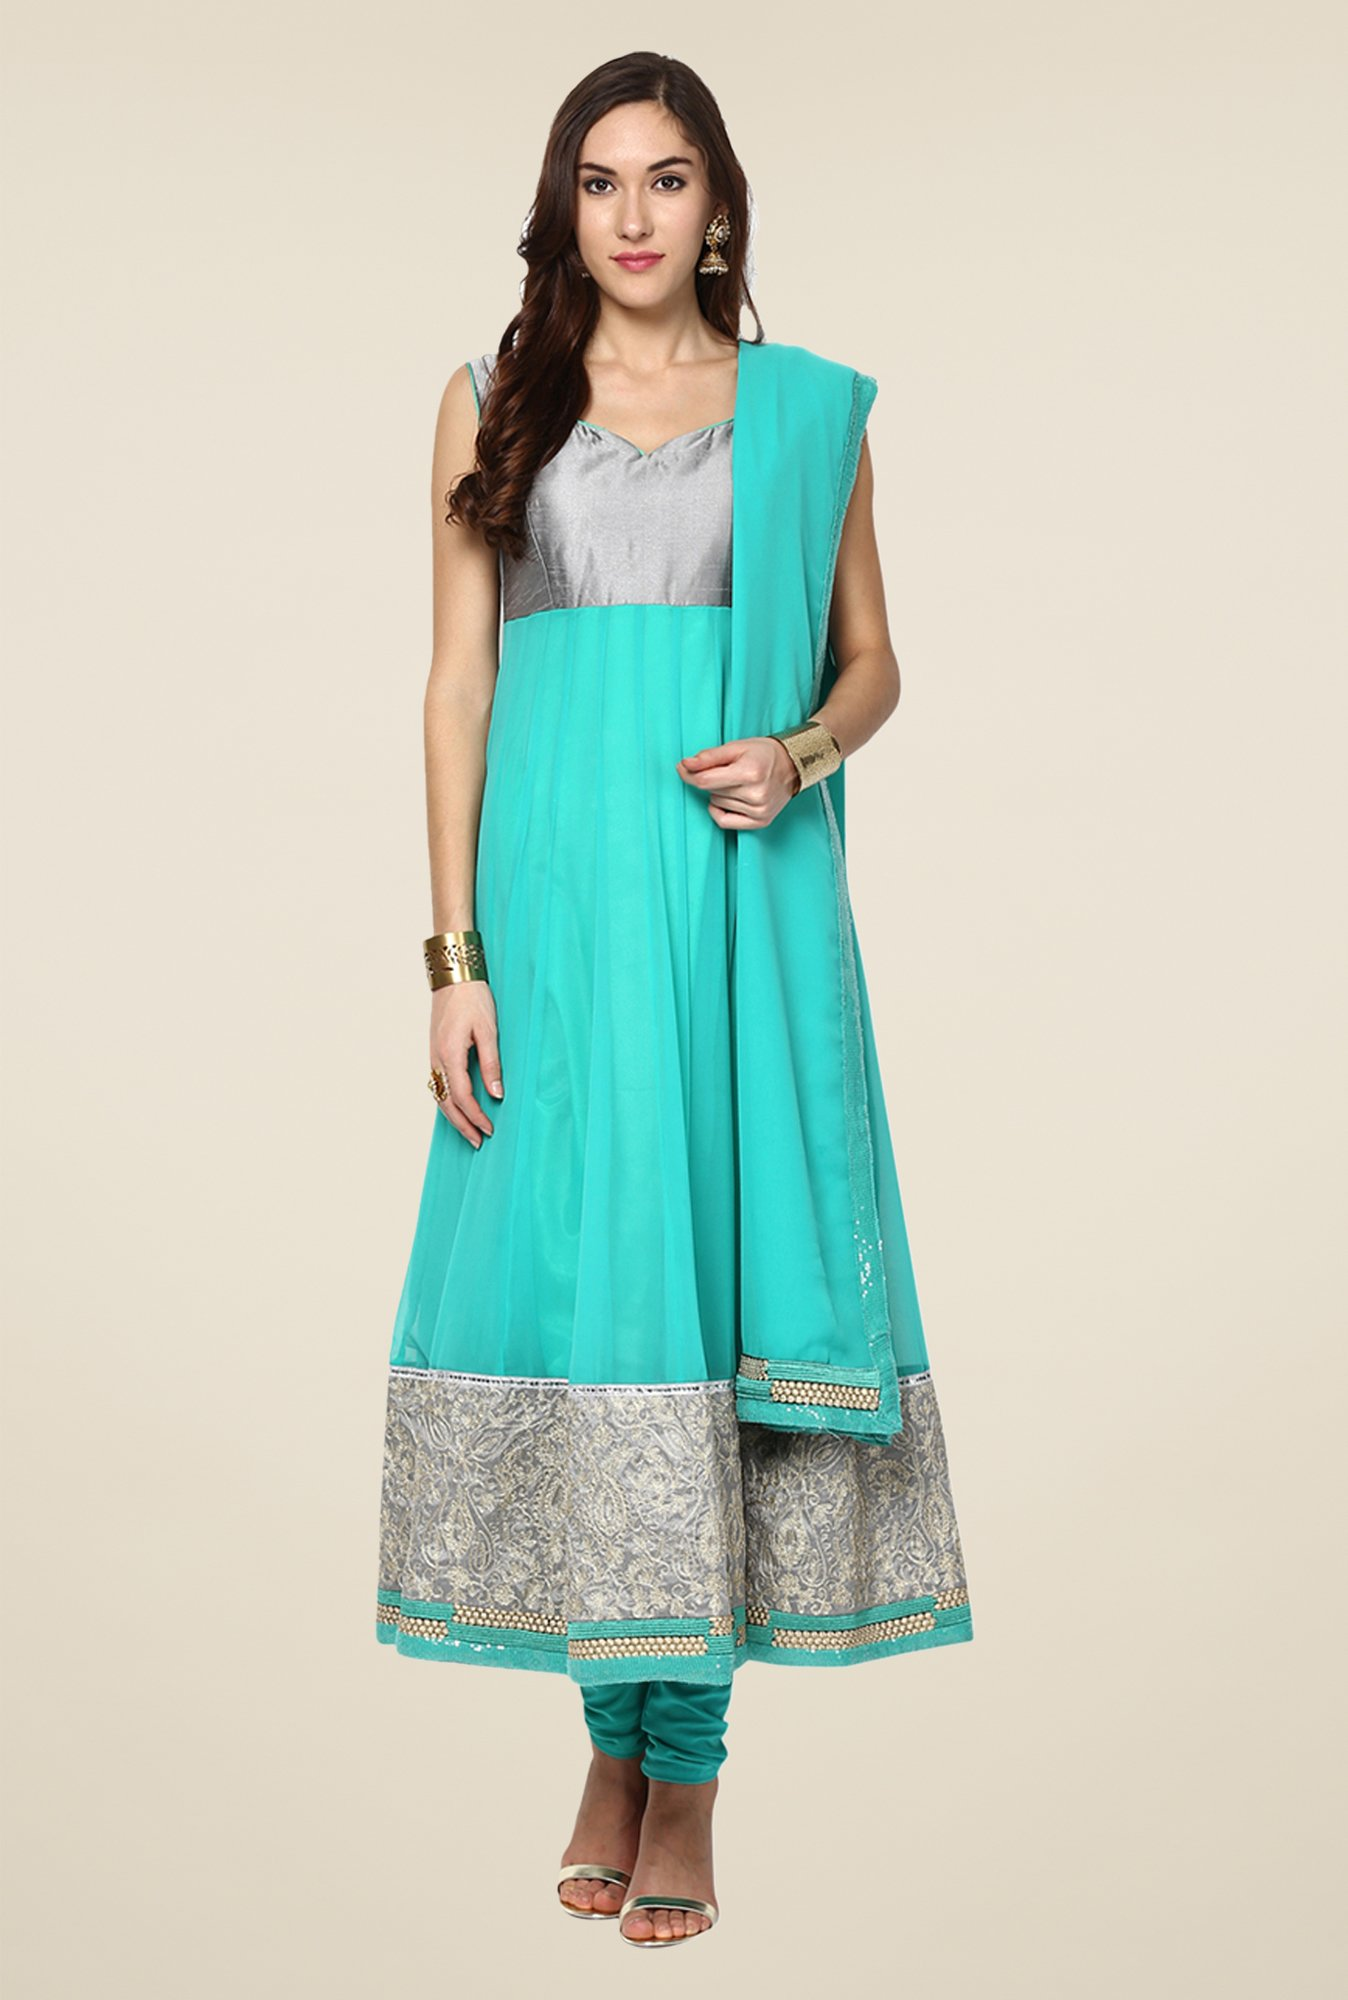 Yepme Merito Sea Green & Silver Salwar Suit Set